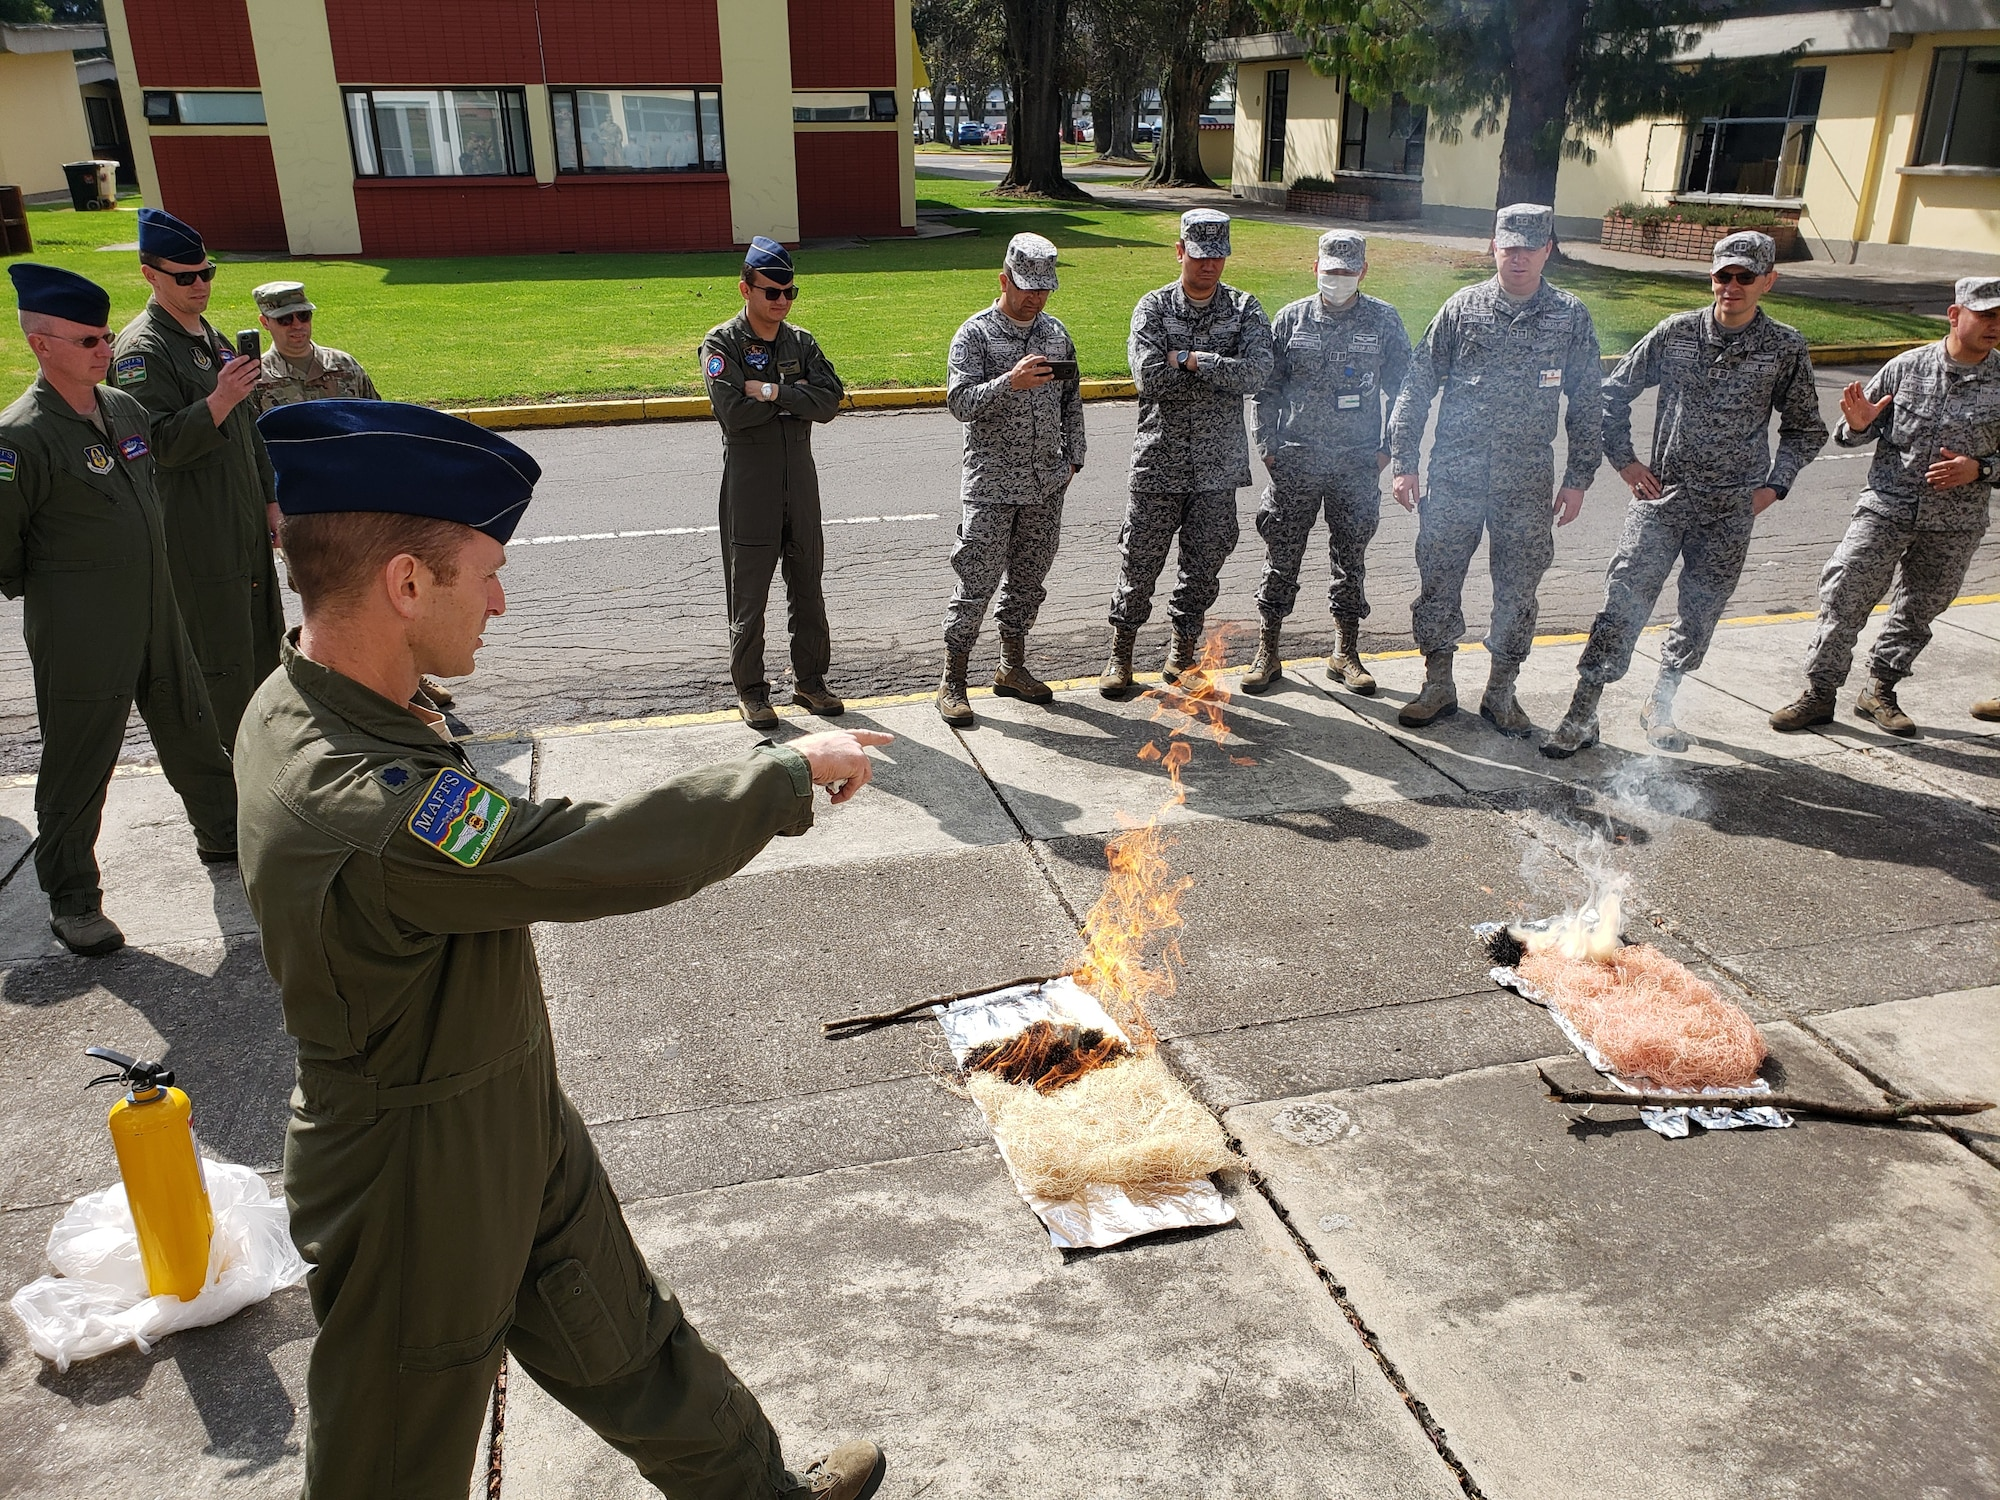 U.S. Air Force Lt. Col. Richard Pantusa, 731st Airlift Squadron Modular Airborne Fire Fighting Systems instructor pilot from Peterson Air Force Base, Colorado, demonstrates the effectiveness of fire retardant in combating forest fires to members from the Fuerza Aerea Colombiana. Employing an aerial firefighting capability will help the FAC in combatting wild fires, both internally and internationally. The specialized training, provided by the U.S. Air Force Reserve Command personnel, was a stepping stone to future work with the FAC on further enhancing this capability. (Courtesy Photo)